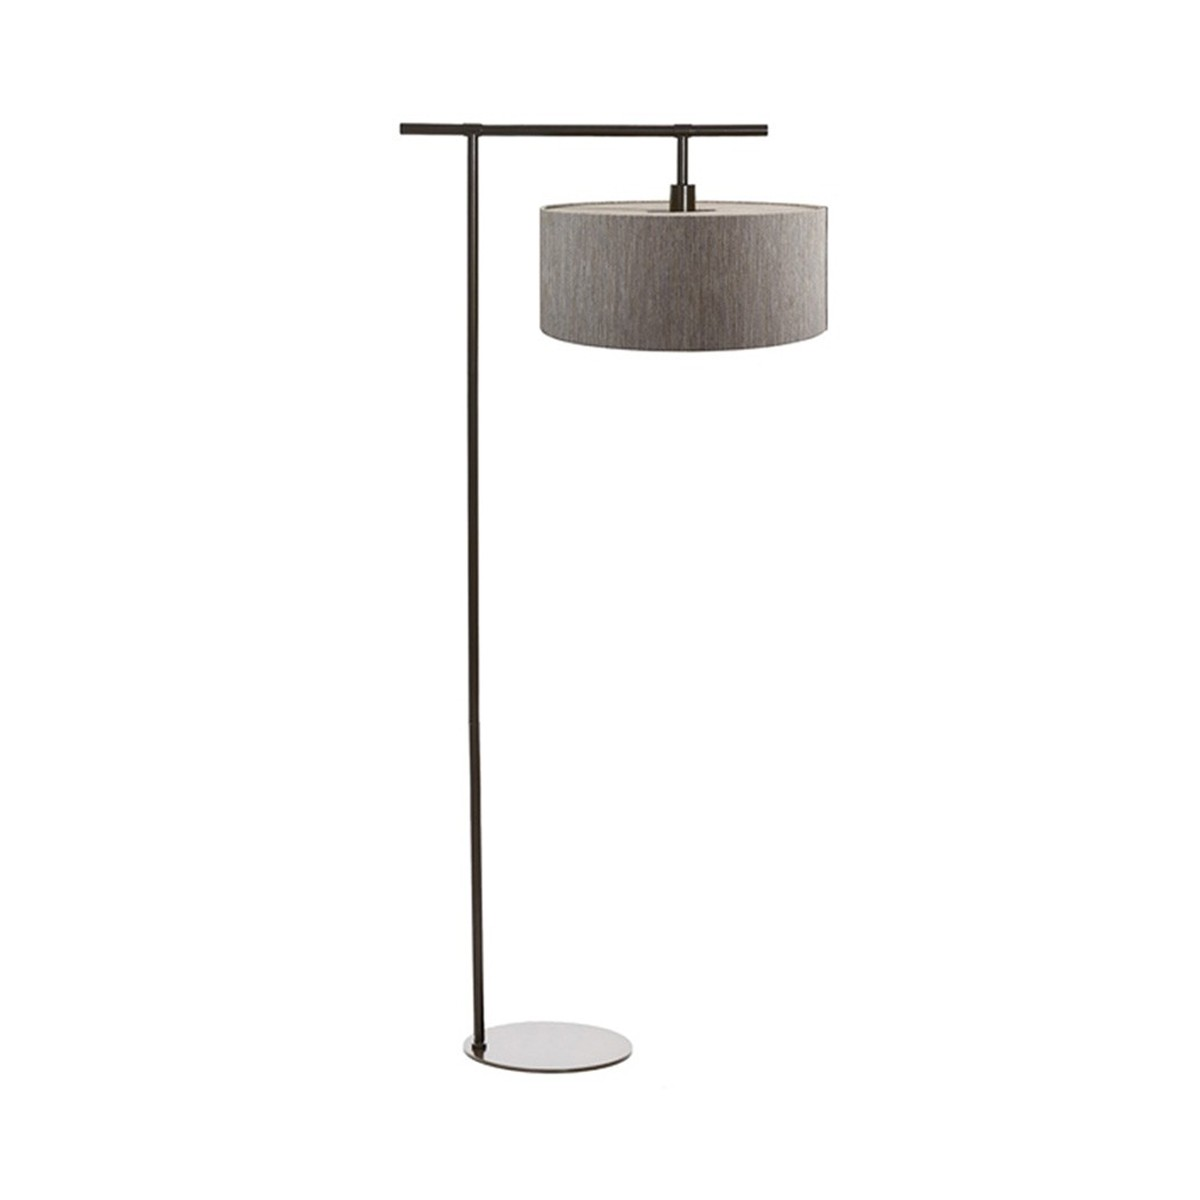 Street - Cylinder Floor Lamp with Shade - Grey